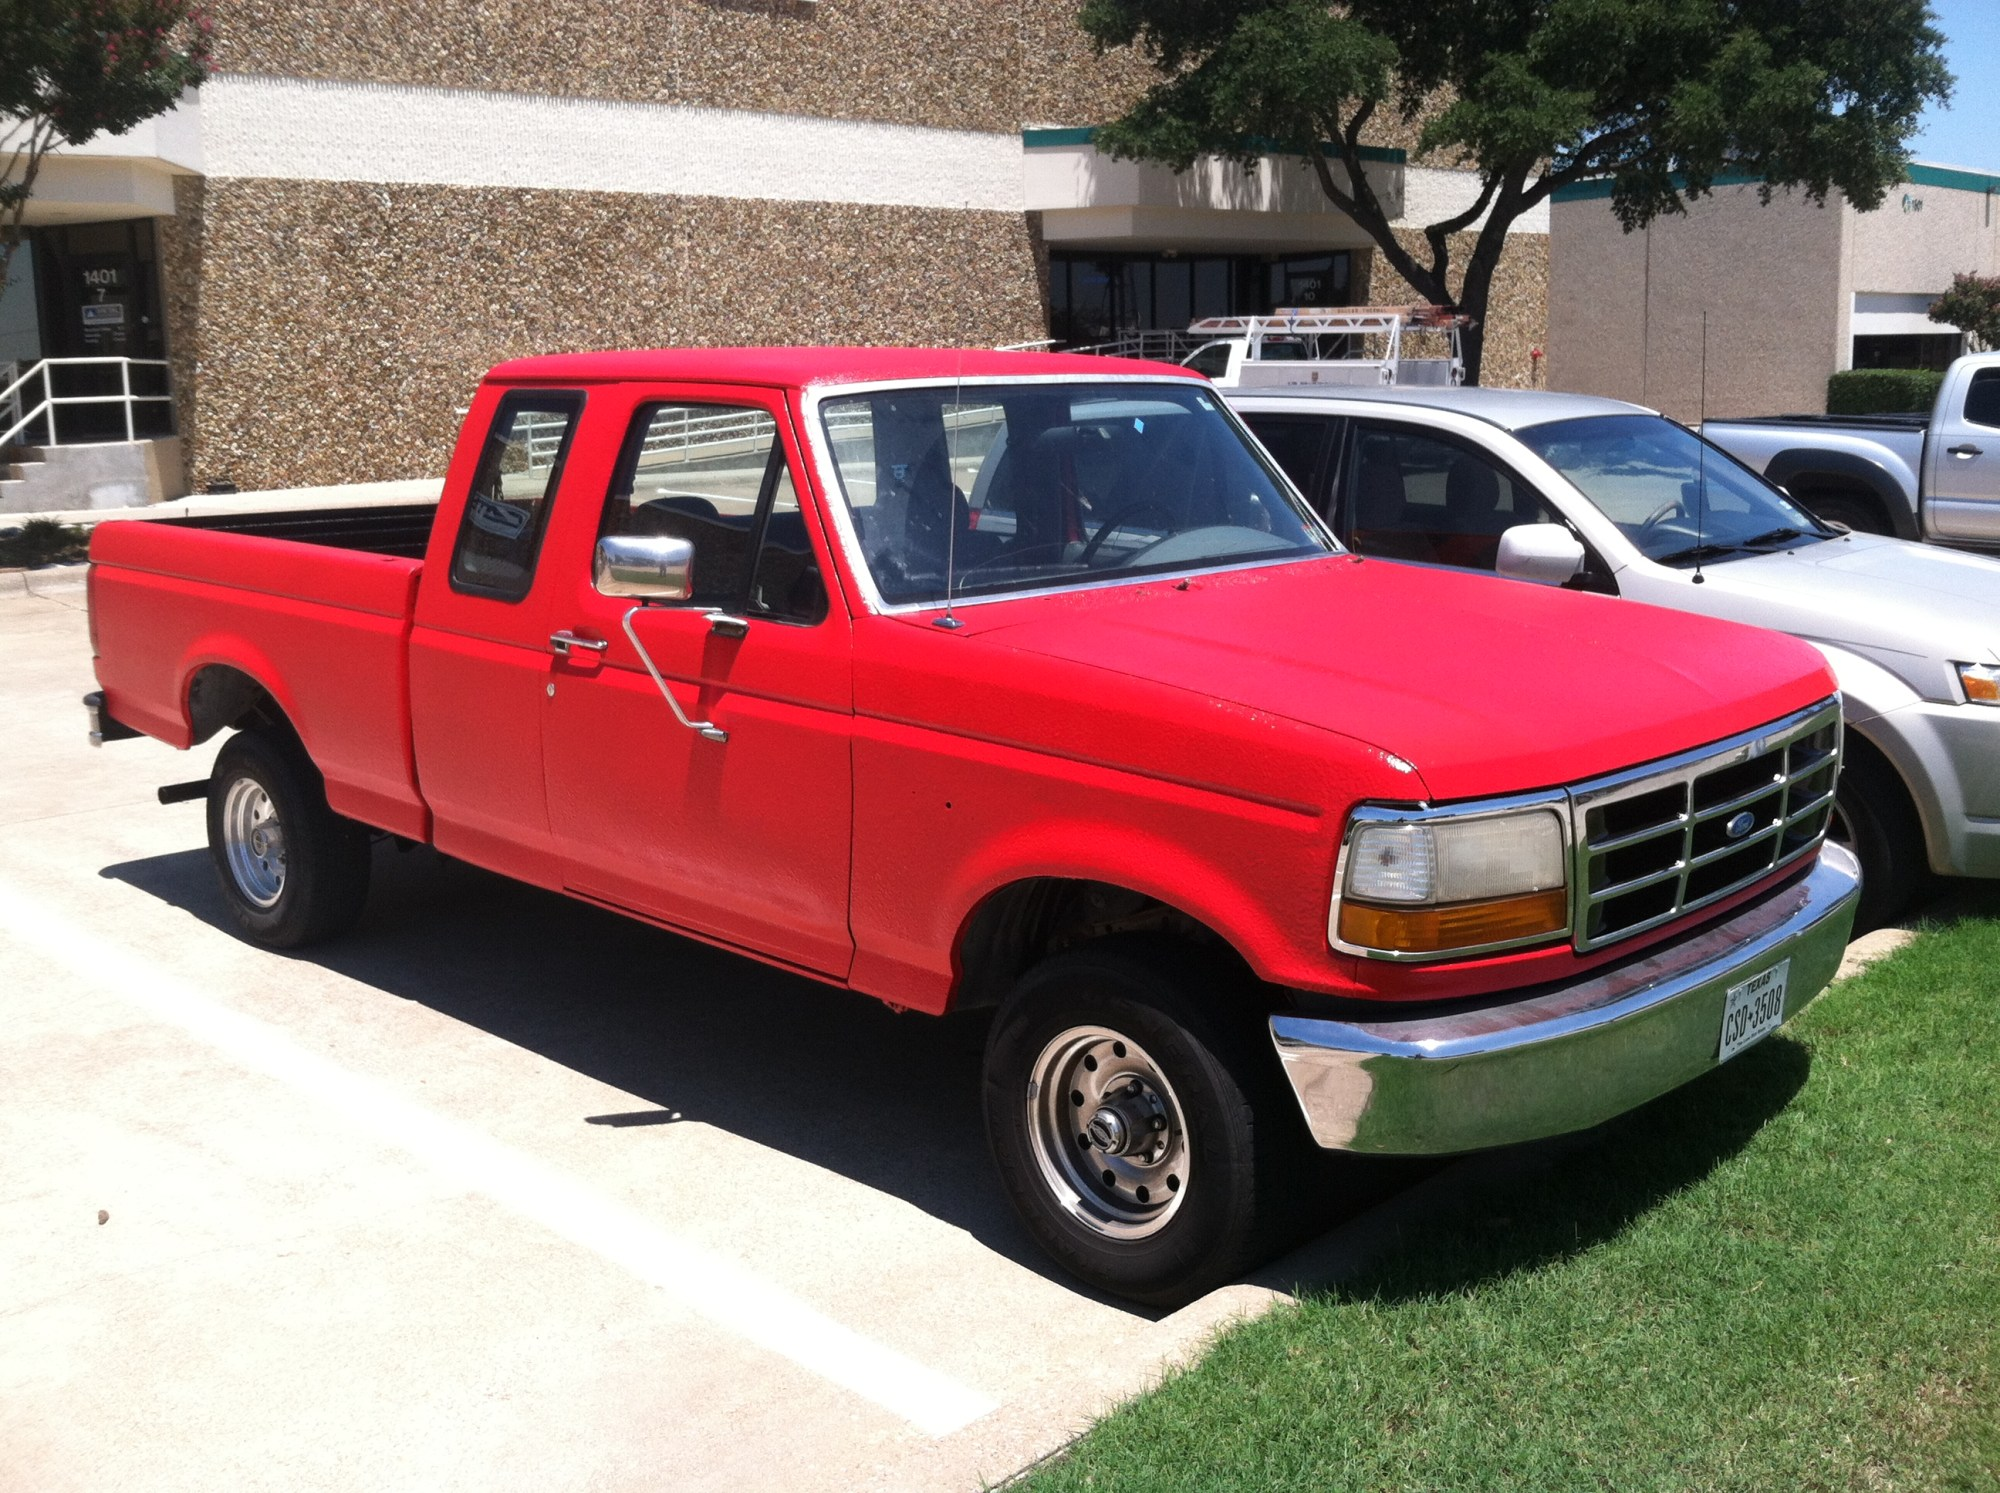 hight resolution of 1995 f150 4x4 totally bed liner paint job 4 quot lift custom lighting